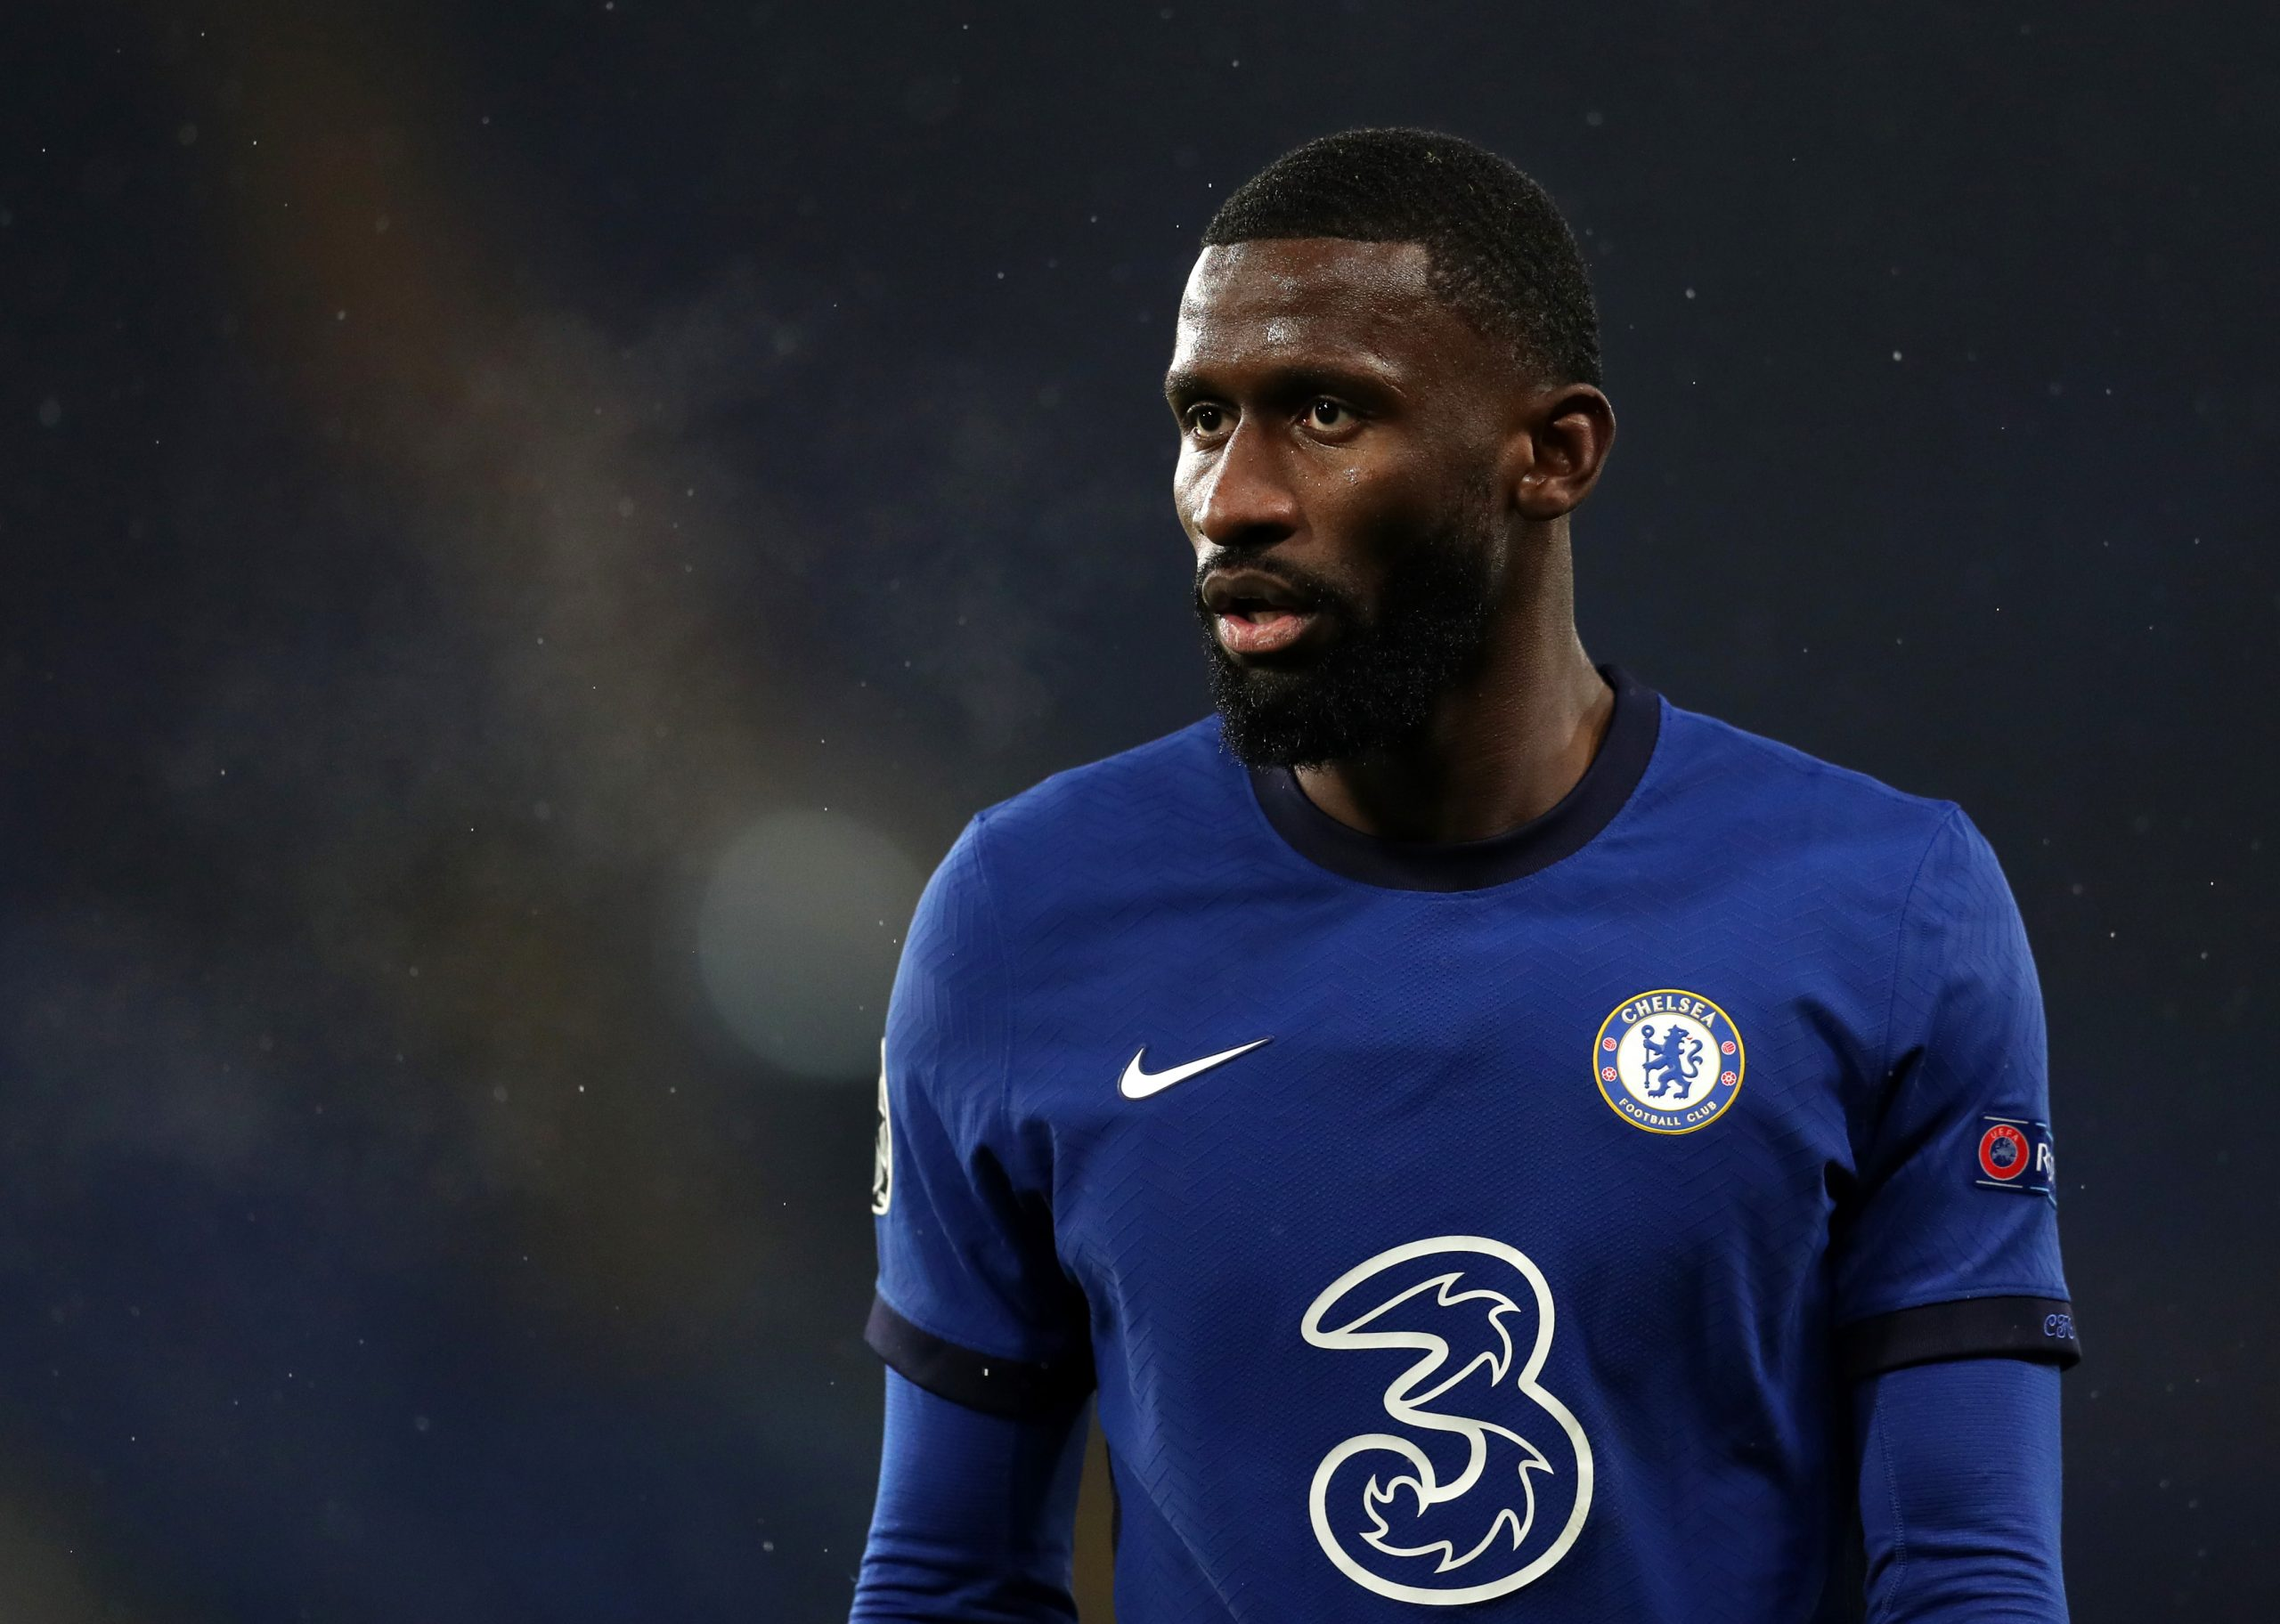 Antonio Rudiger in action for Chelsea against Krasnodar in the UEFA Champions League. (GETTY Images)